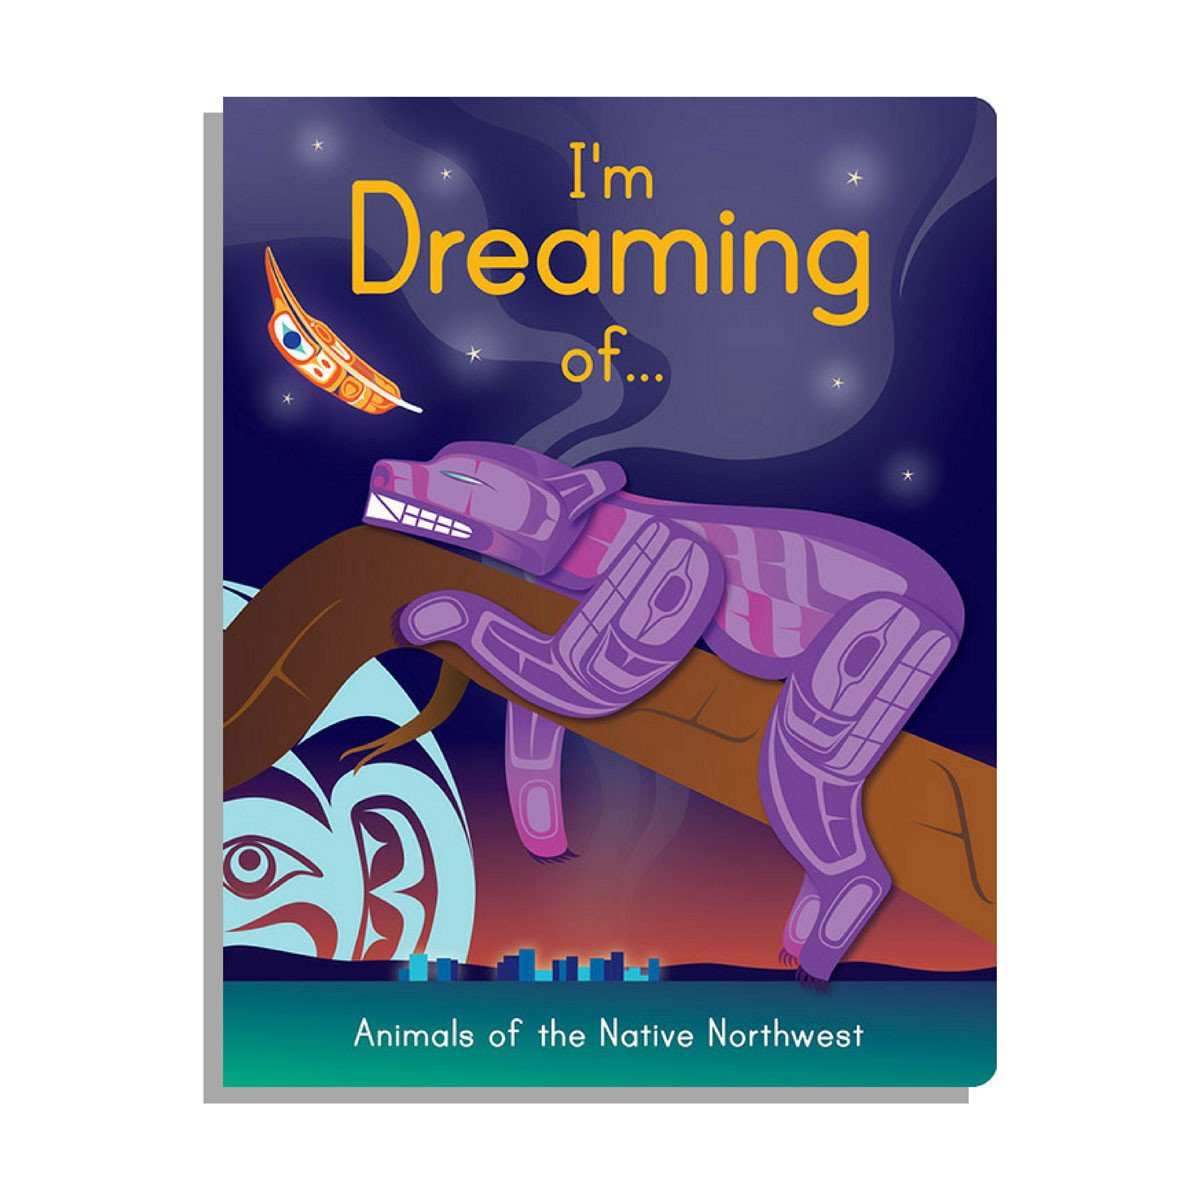 I'm Dreaming Of... by Melaney Gleeson-Lyall